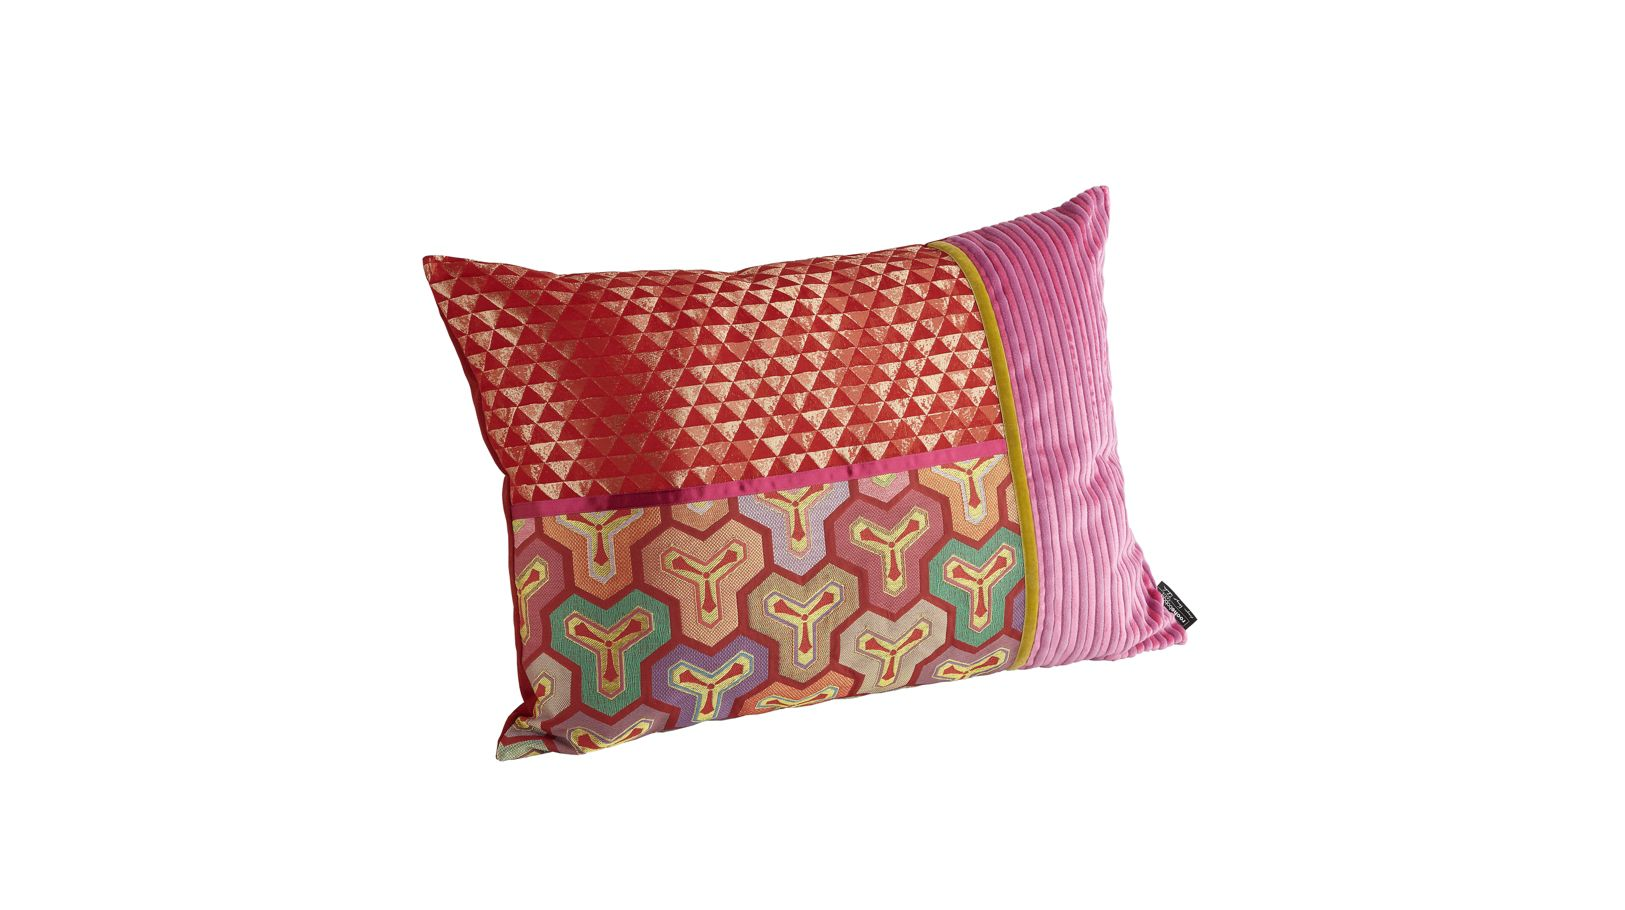 CUSHIONS: all Roche Bobois products